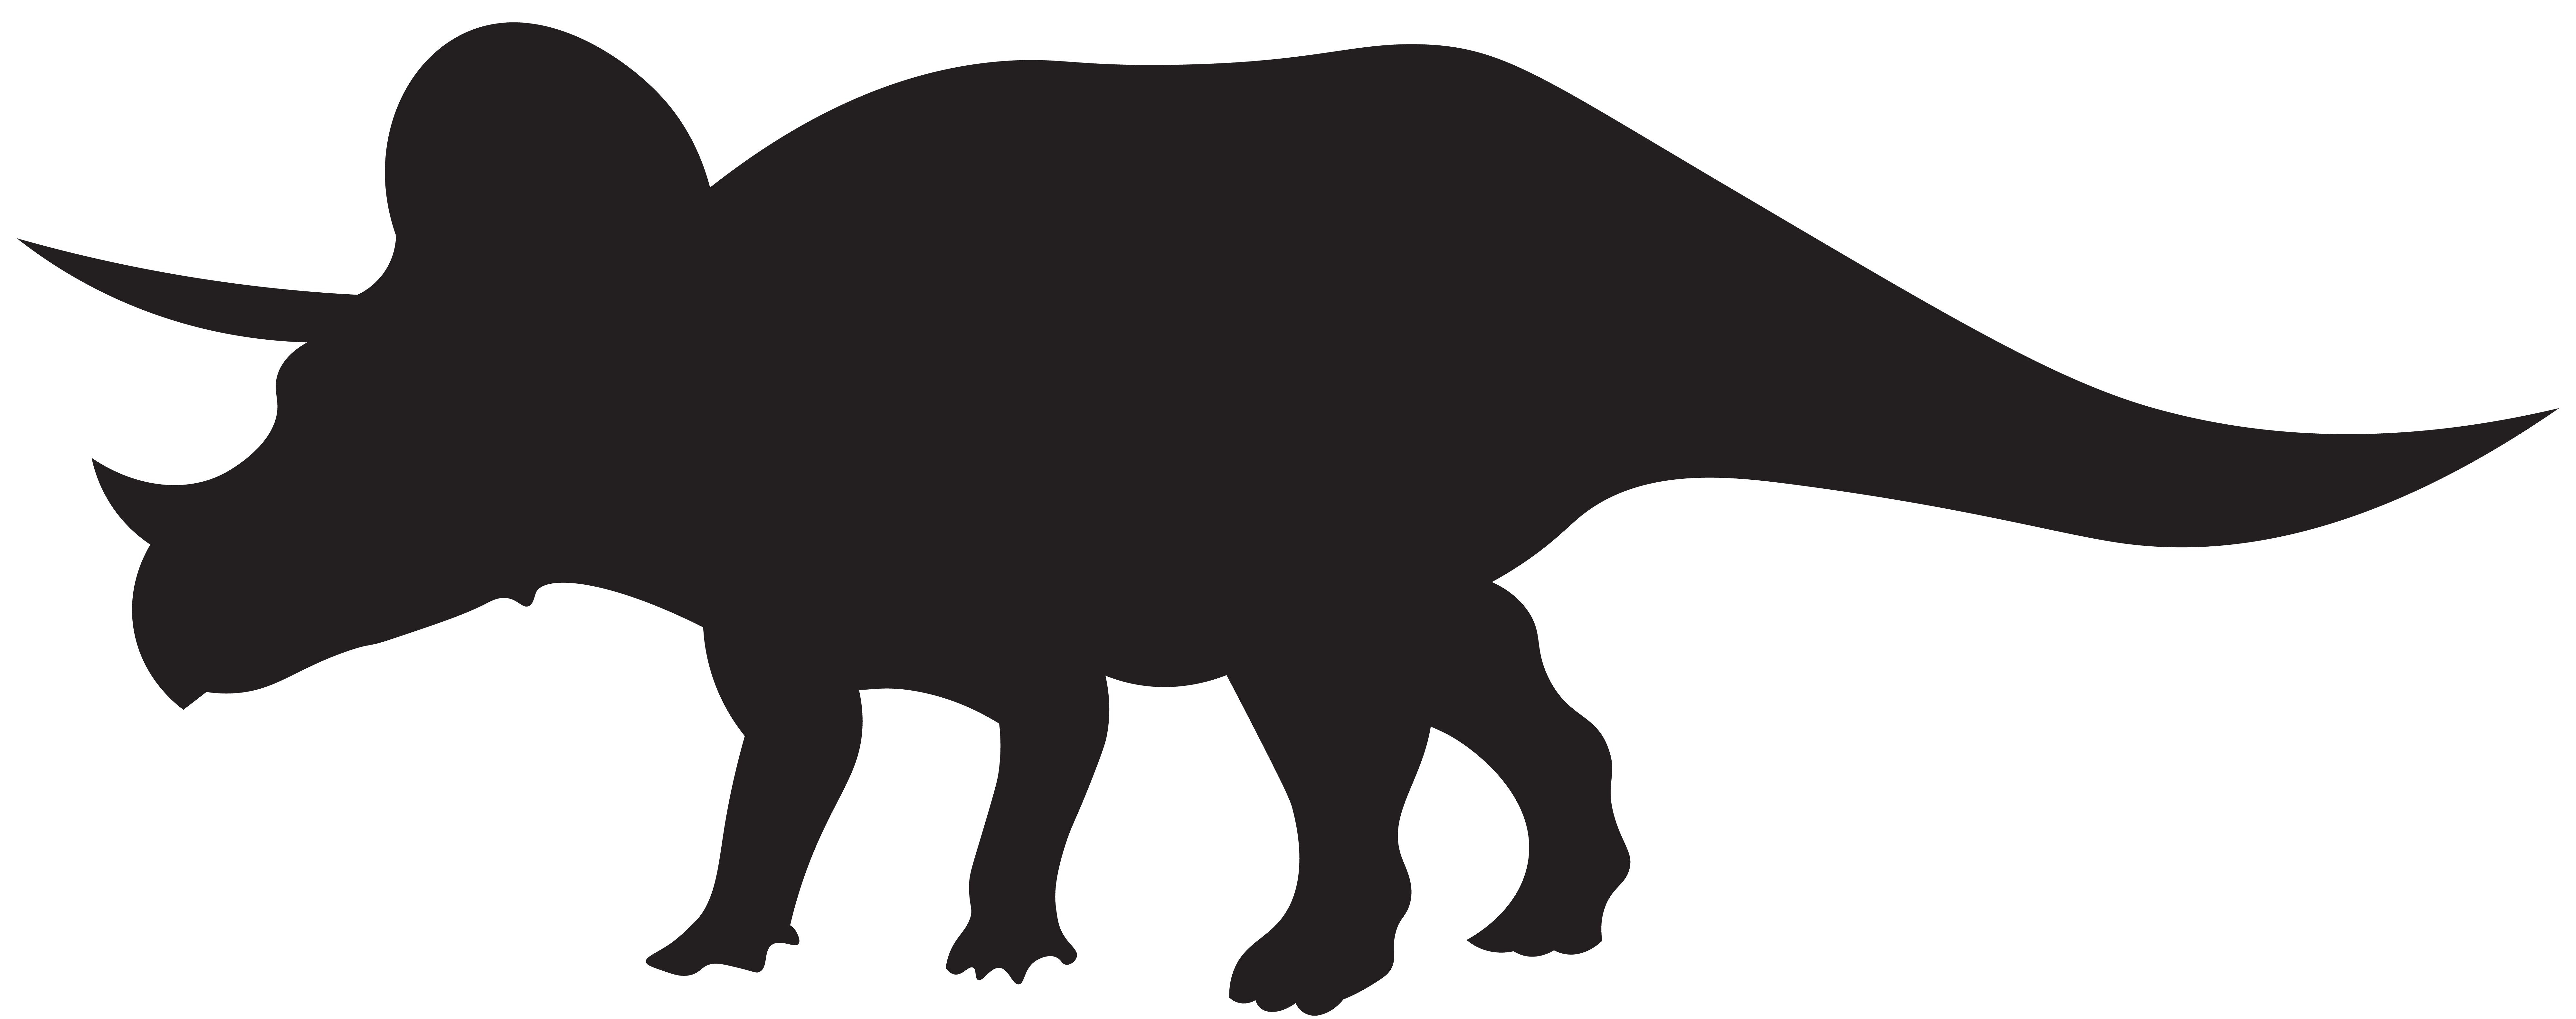 8000x3165 Dinosaurs Triceratops Silhouette Png Clip Art Imageu200b Gallery